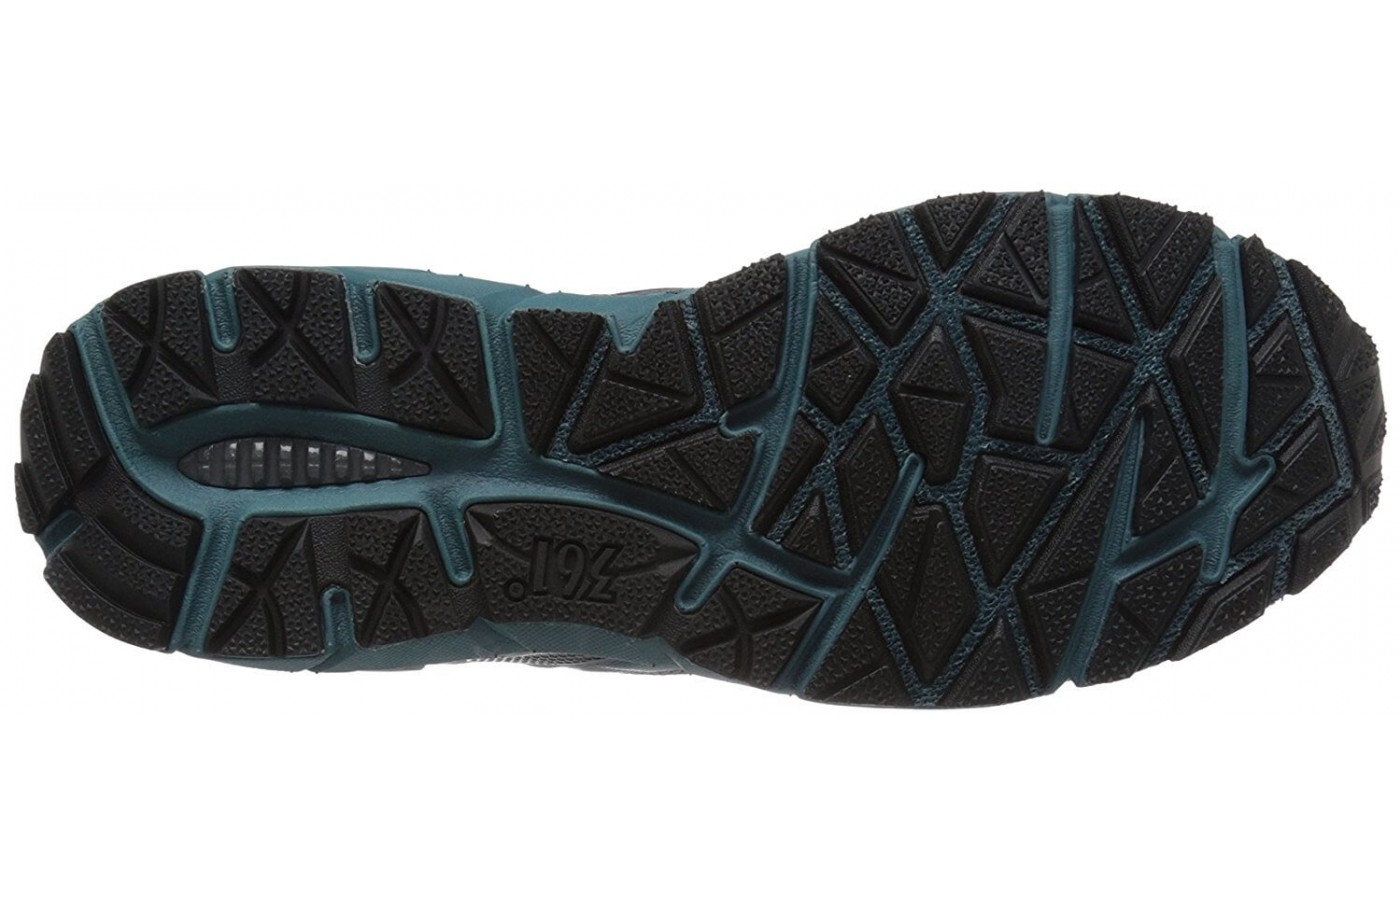 The hybrid lug system on the underfoot provides extra traction